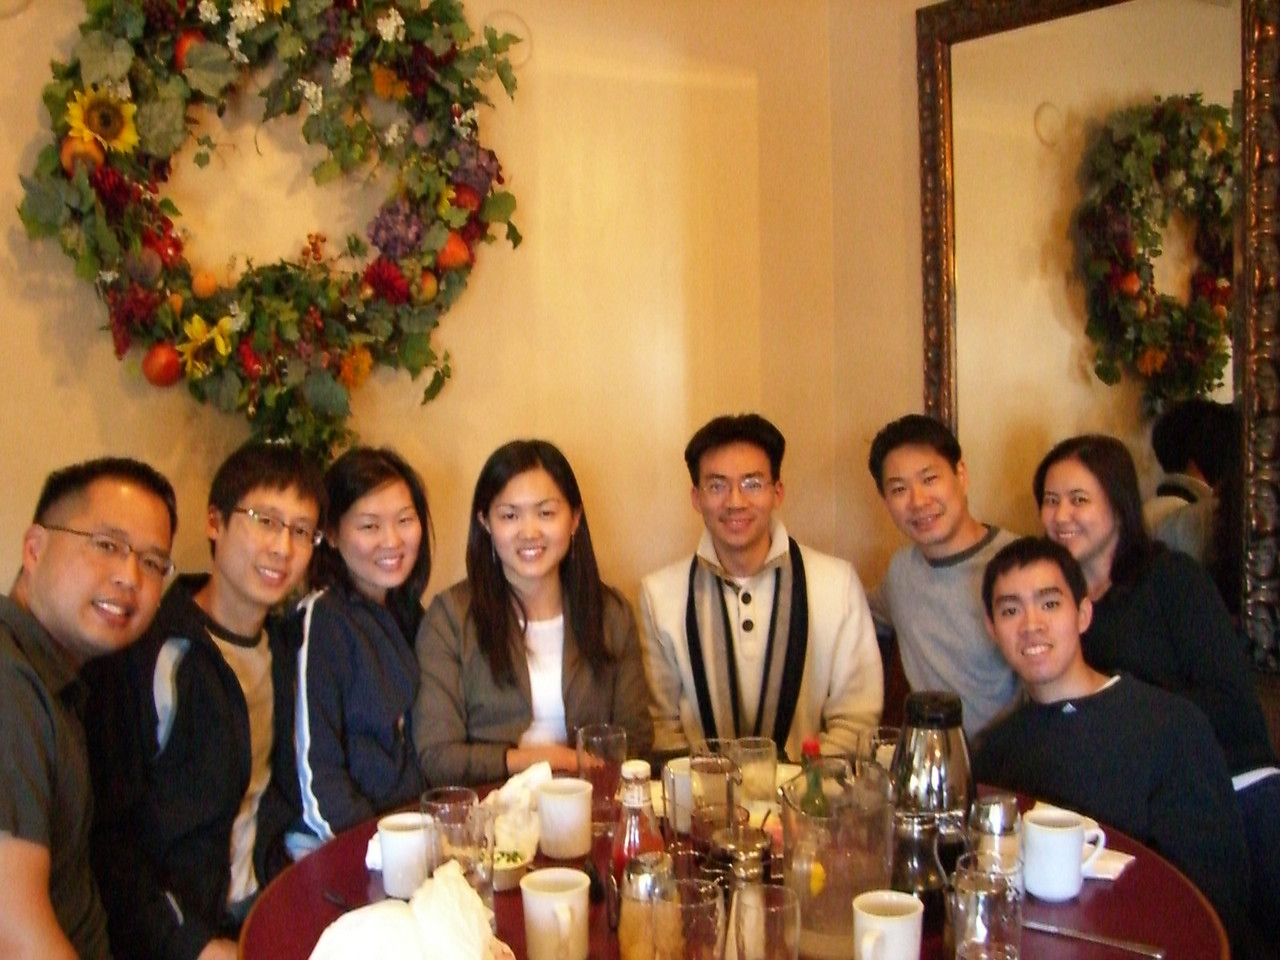 2006 03 25 Sat - Bernice Chen's Spring Break visit to NorCal - Group photo